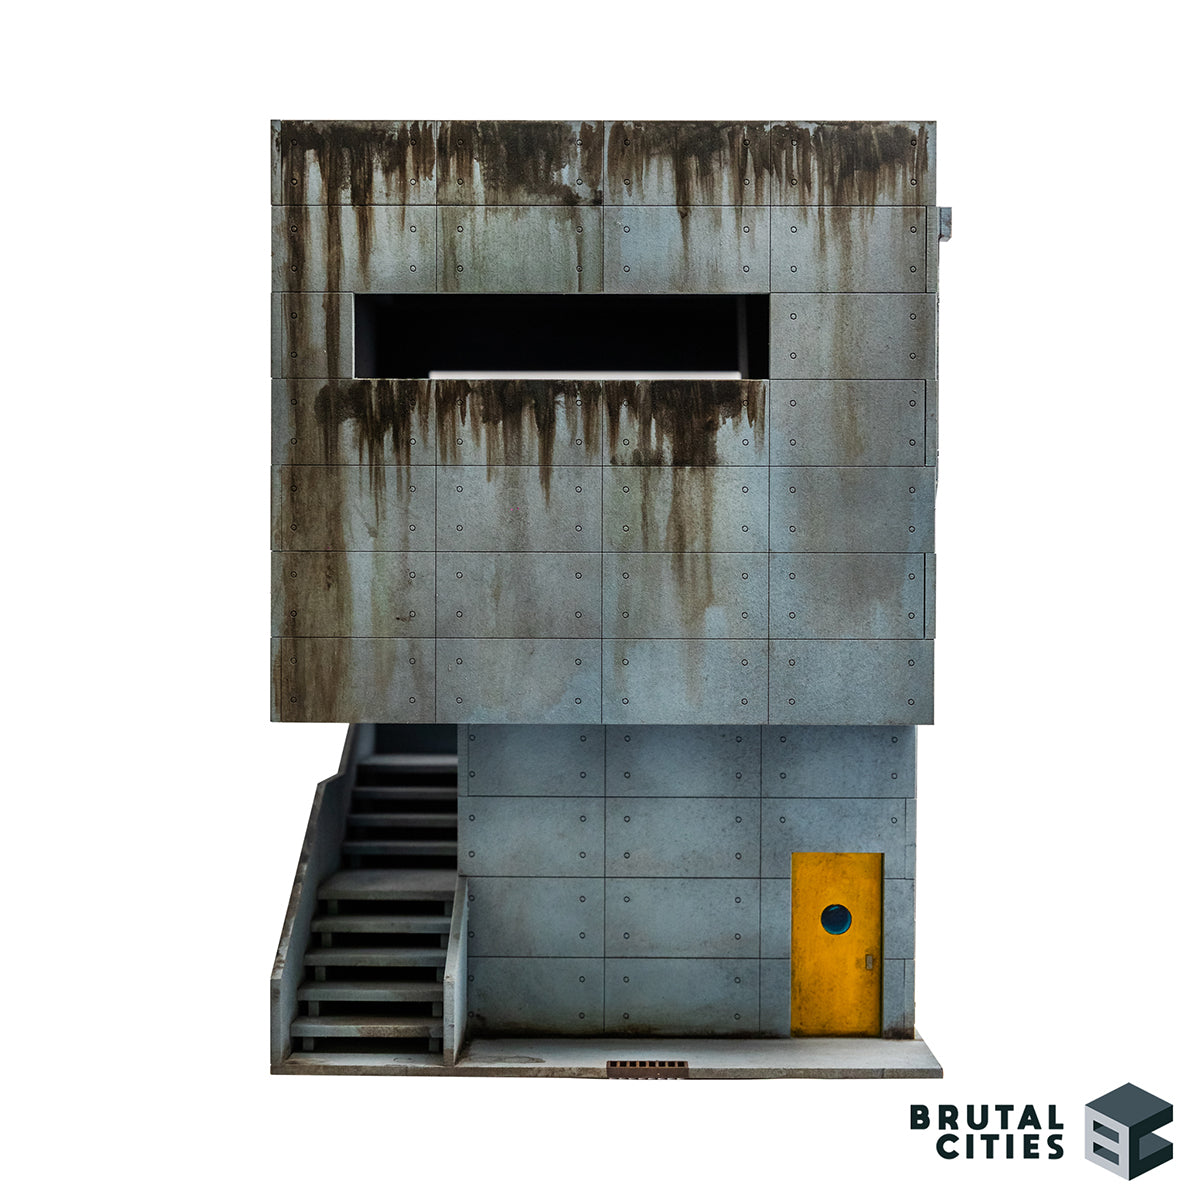 Concrete Brutalist terrain kit with a staircase and grime. Large window for overwatch positions. Oil paints used to paint grimey stains for weathering. Looks a bit like a bunker.